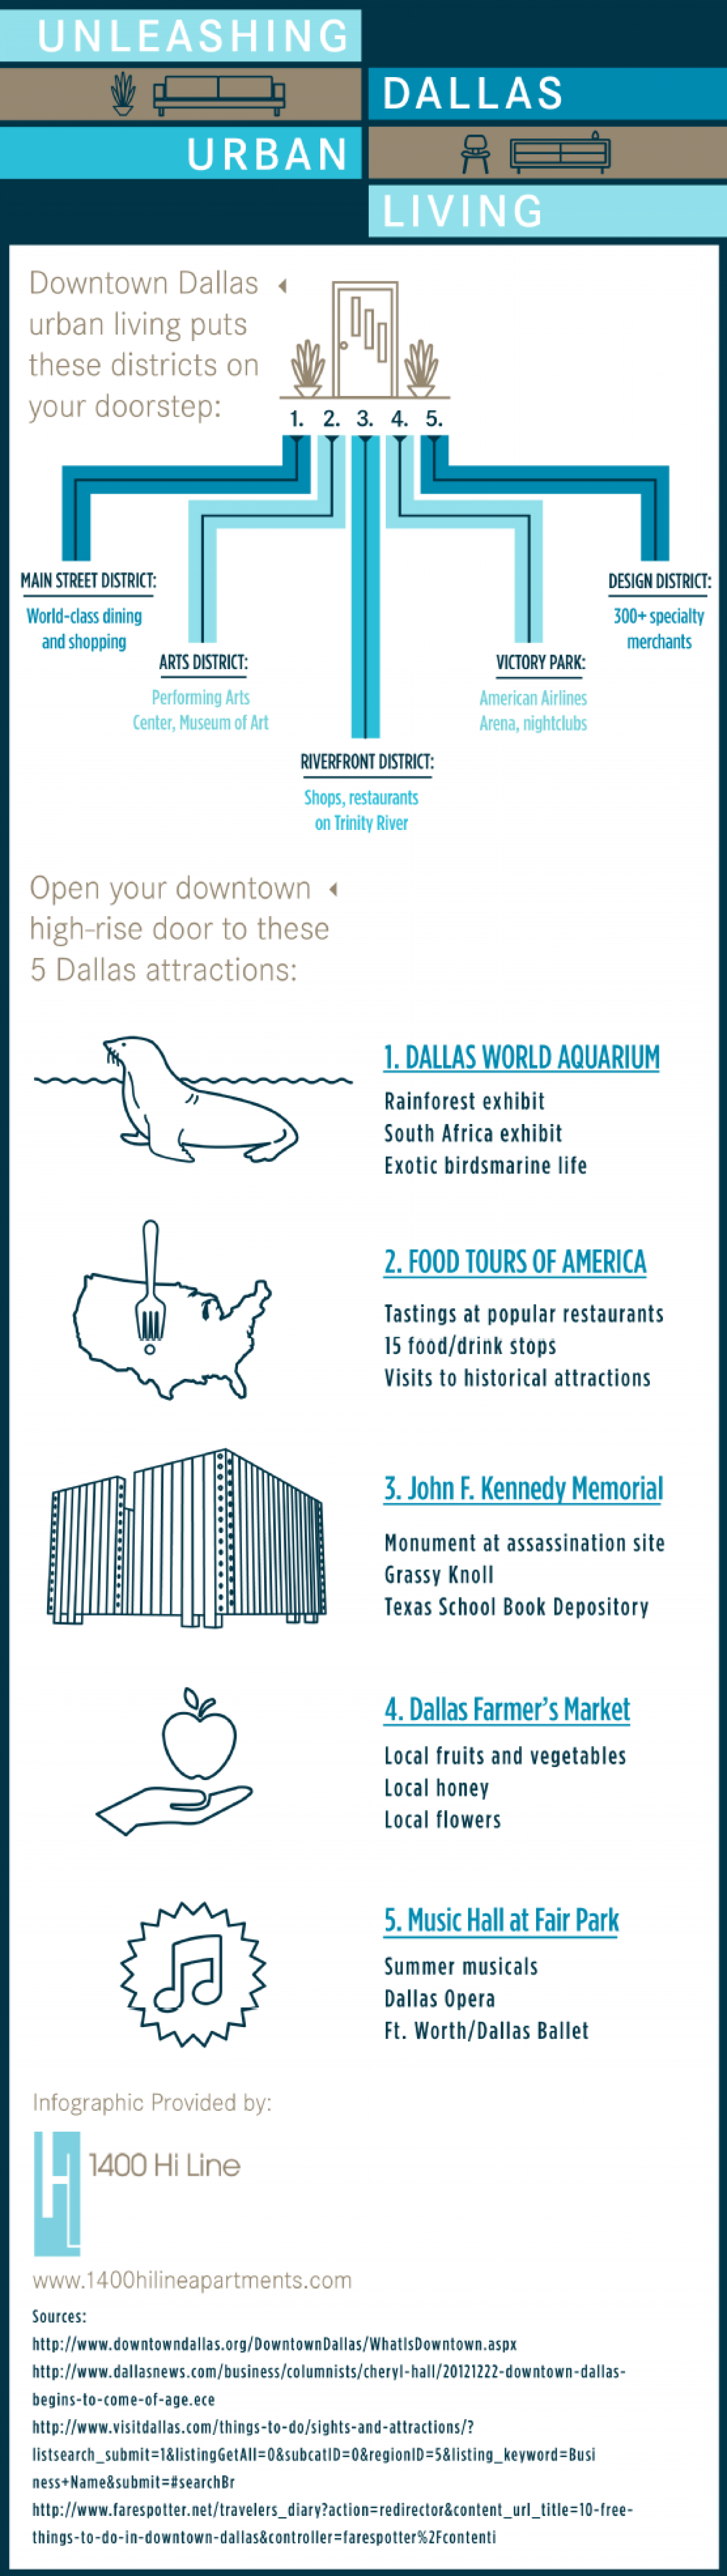 Unleashing Dallas Urban Living Infographic